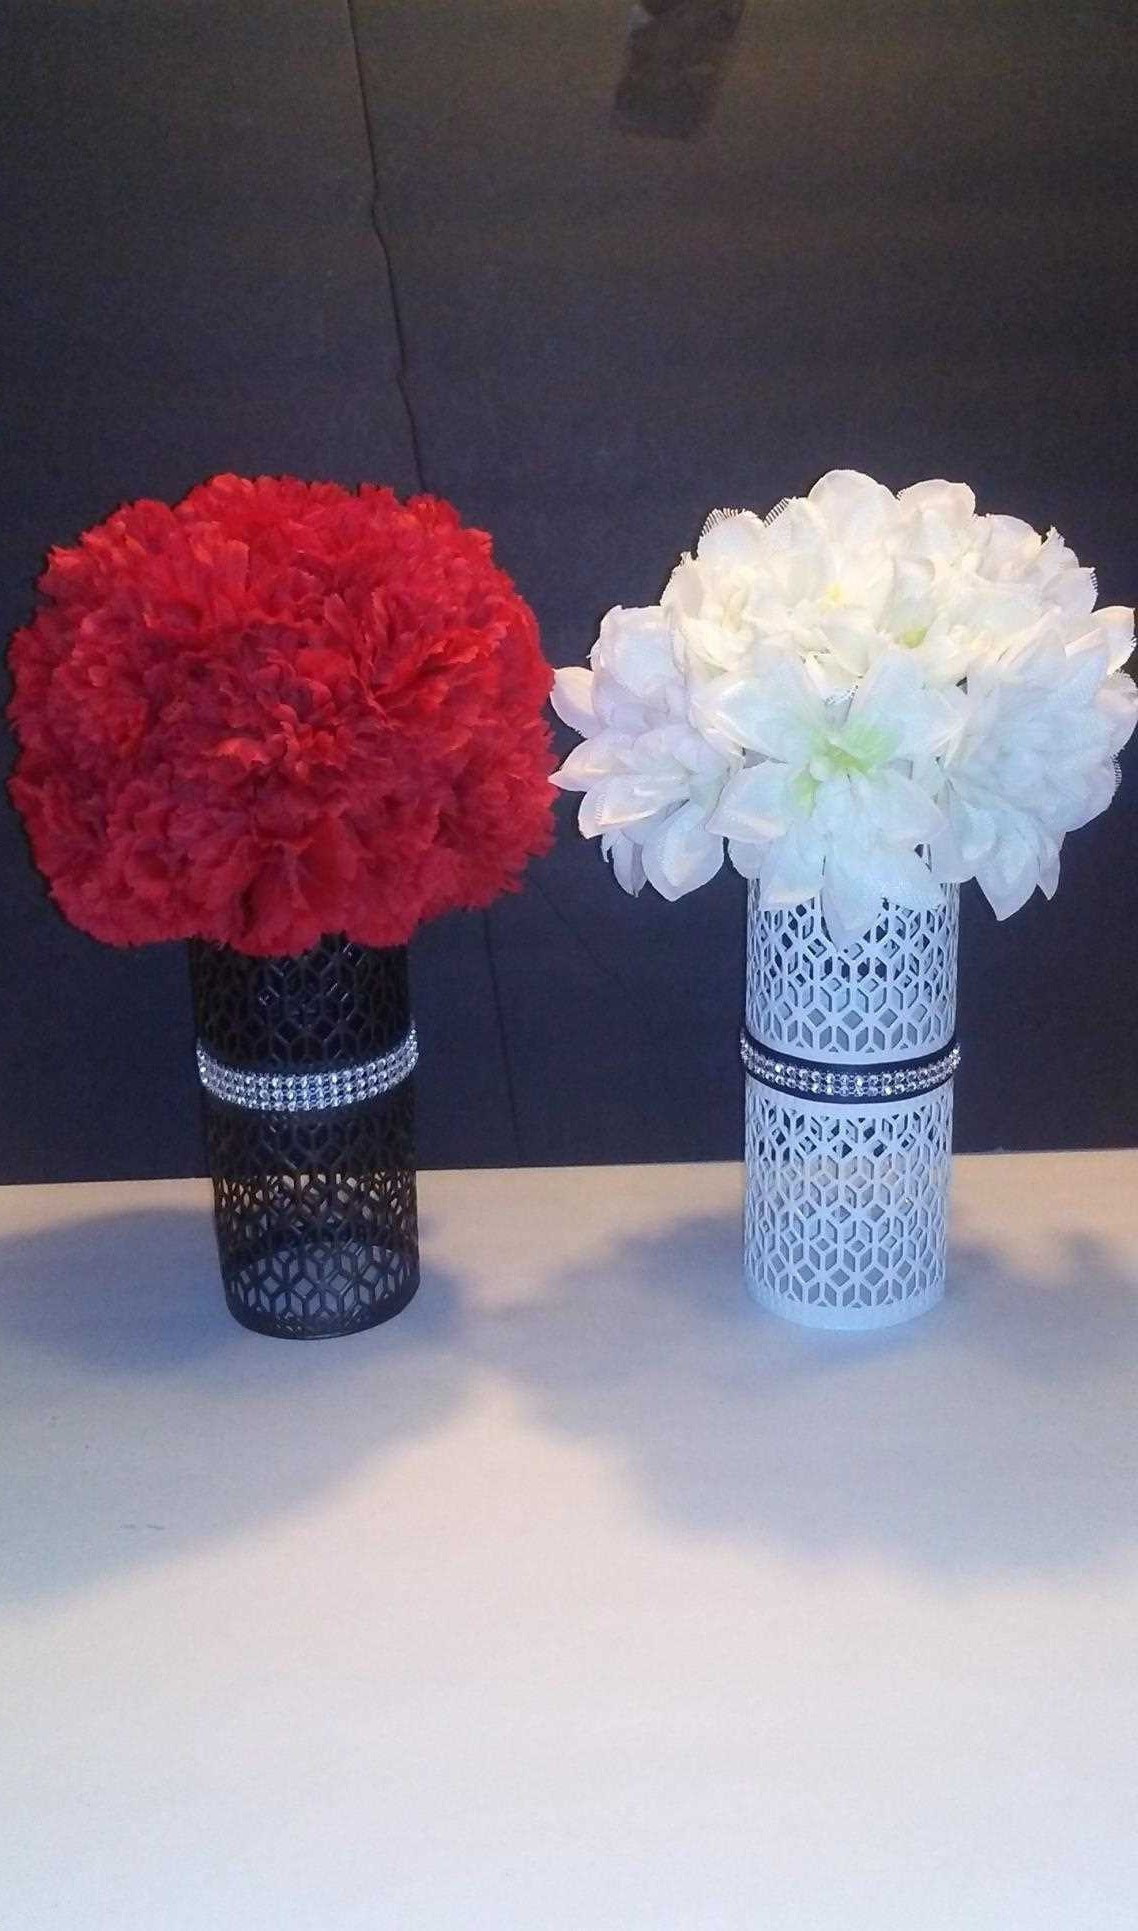 faux white peonies in vase of fake flowers for wedding decorations fresh 30 fresh cheap artificial with regard to 18 fake flowers for wedding decorations fake flowers for wedding decorations best of dollar tree wedding